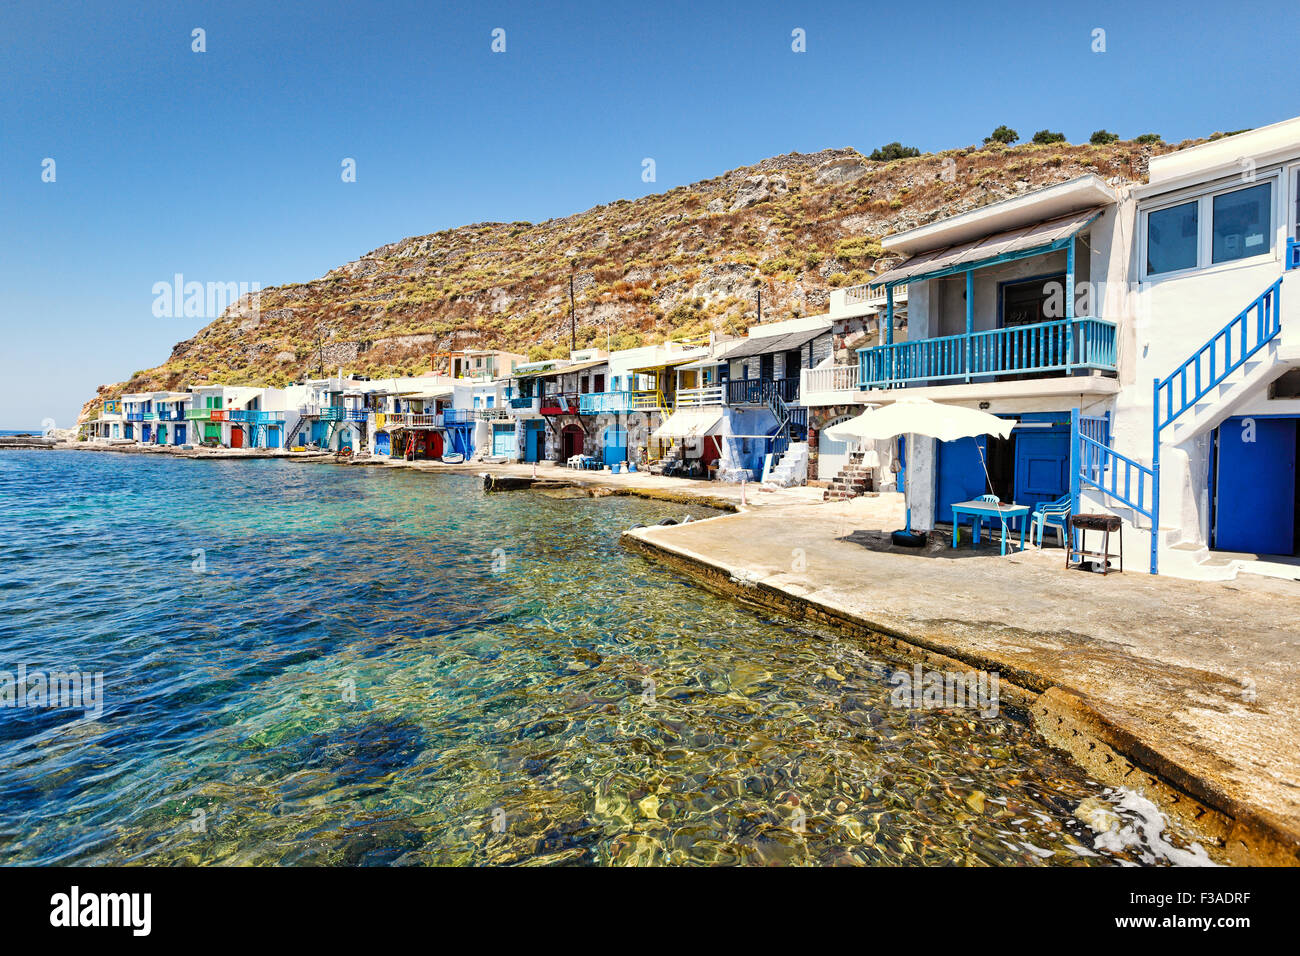 """Traditional fishermen houses with the impressive boat shelters, also known as """"syrmata"""" in Klima of Milos, Greece - Stock Image"""